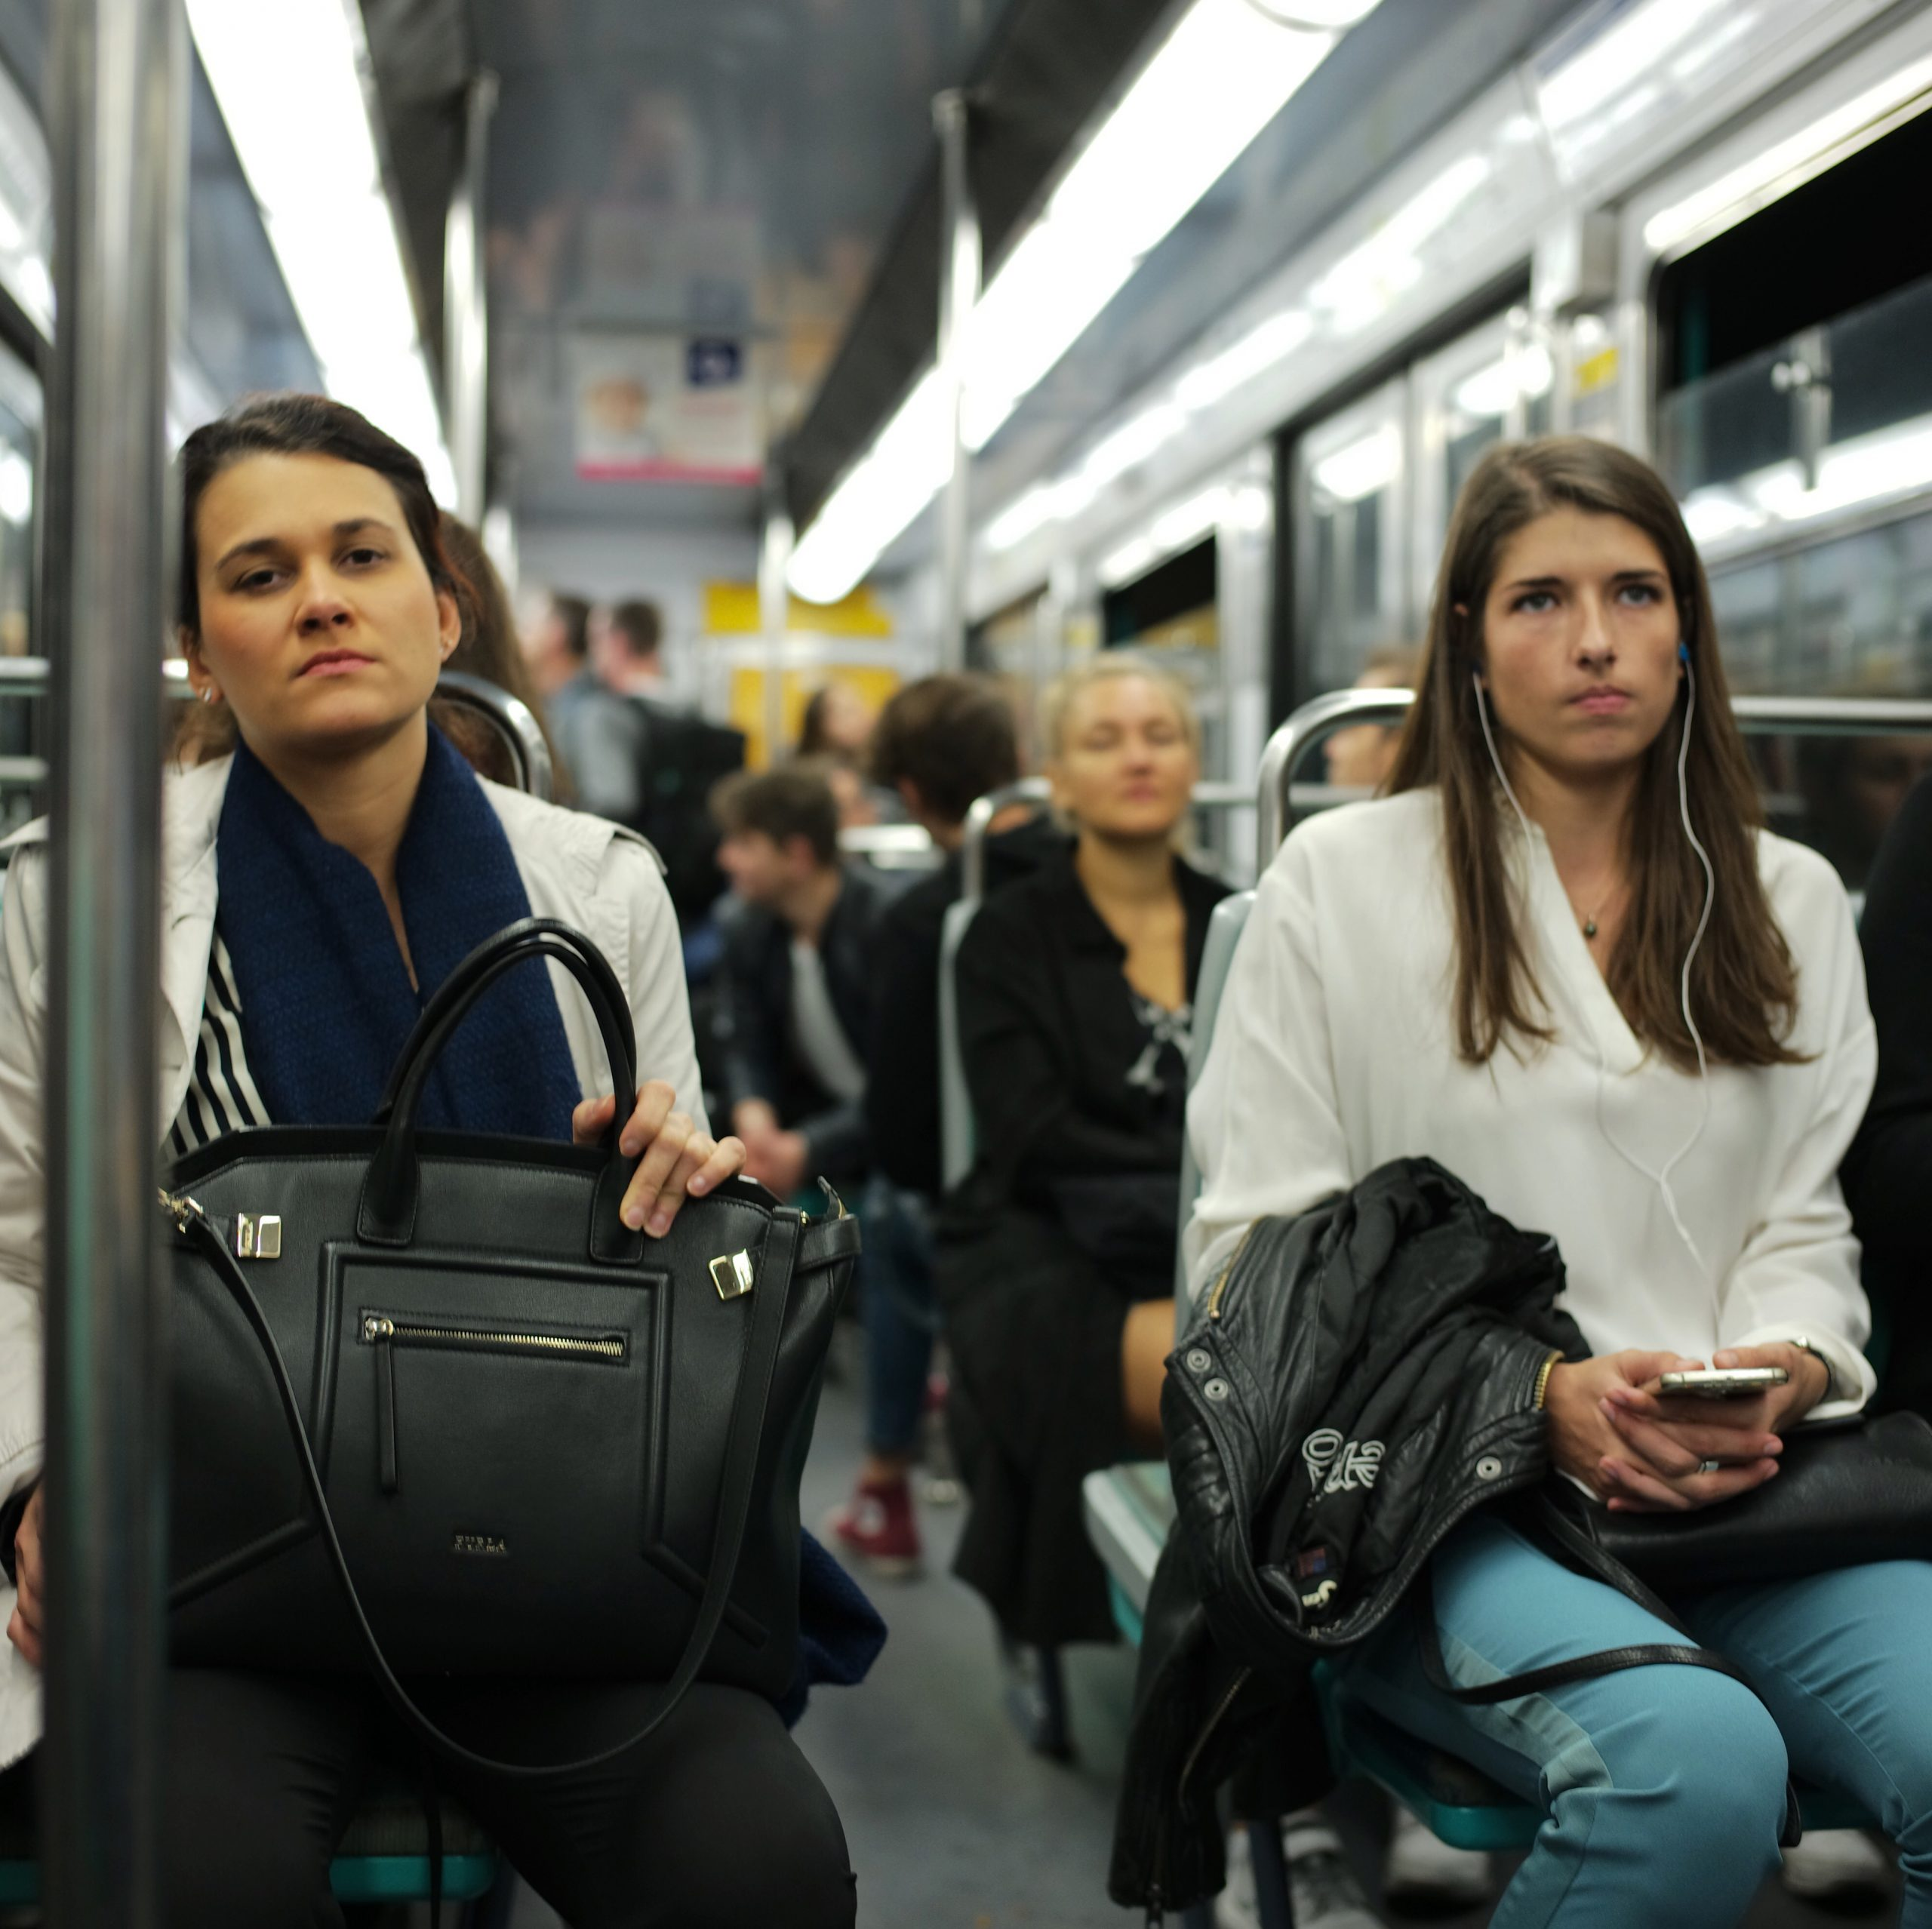 Tired commuters on the Paris metro - Leica M10